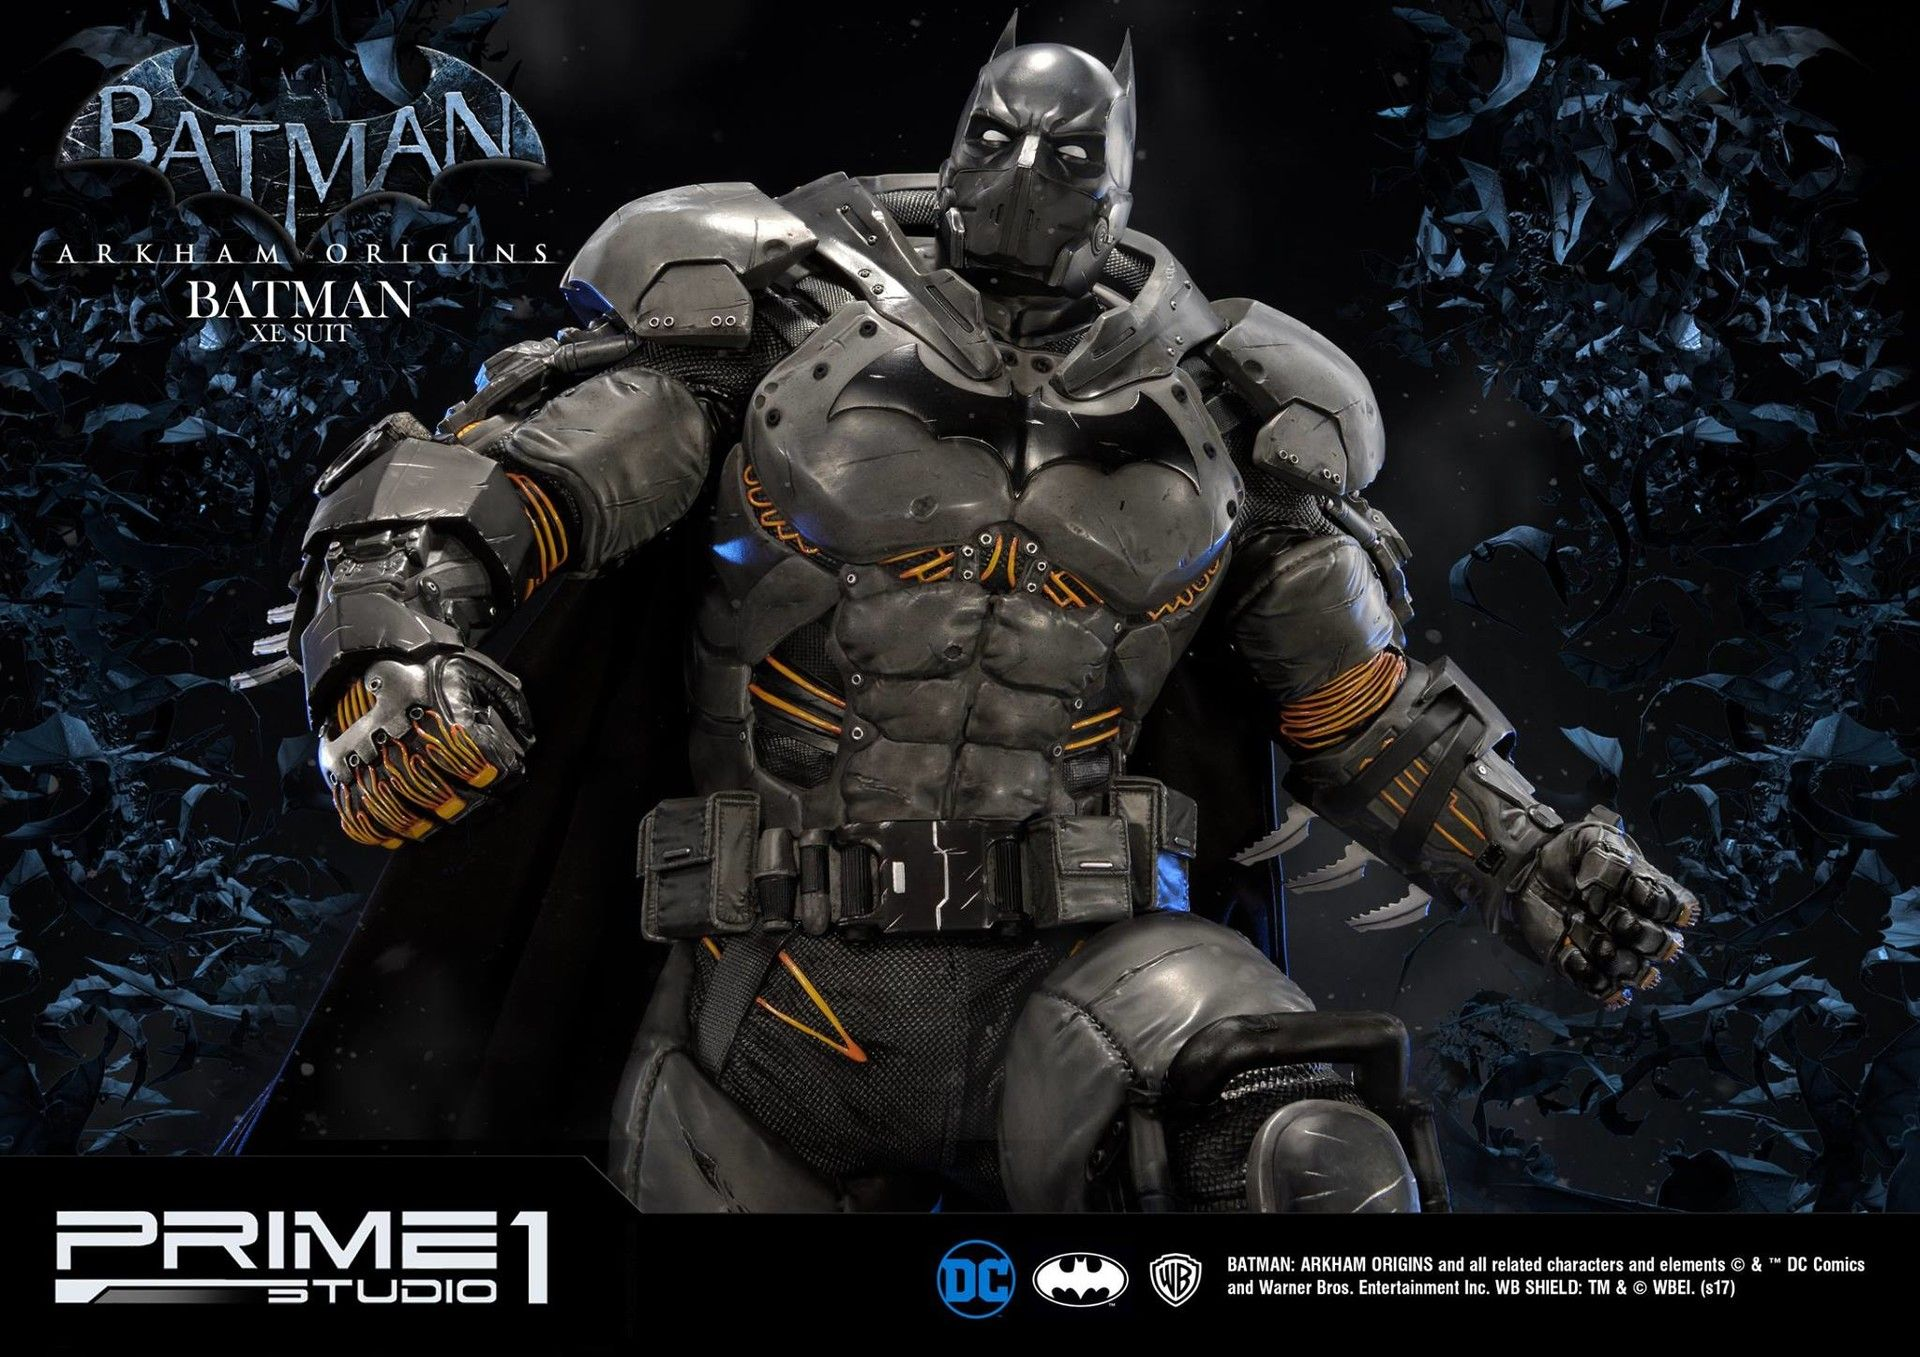 Batman XE Suit | DC | Batman arkham origins, Batman arkham